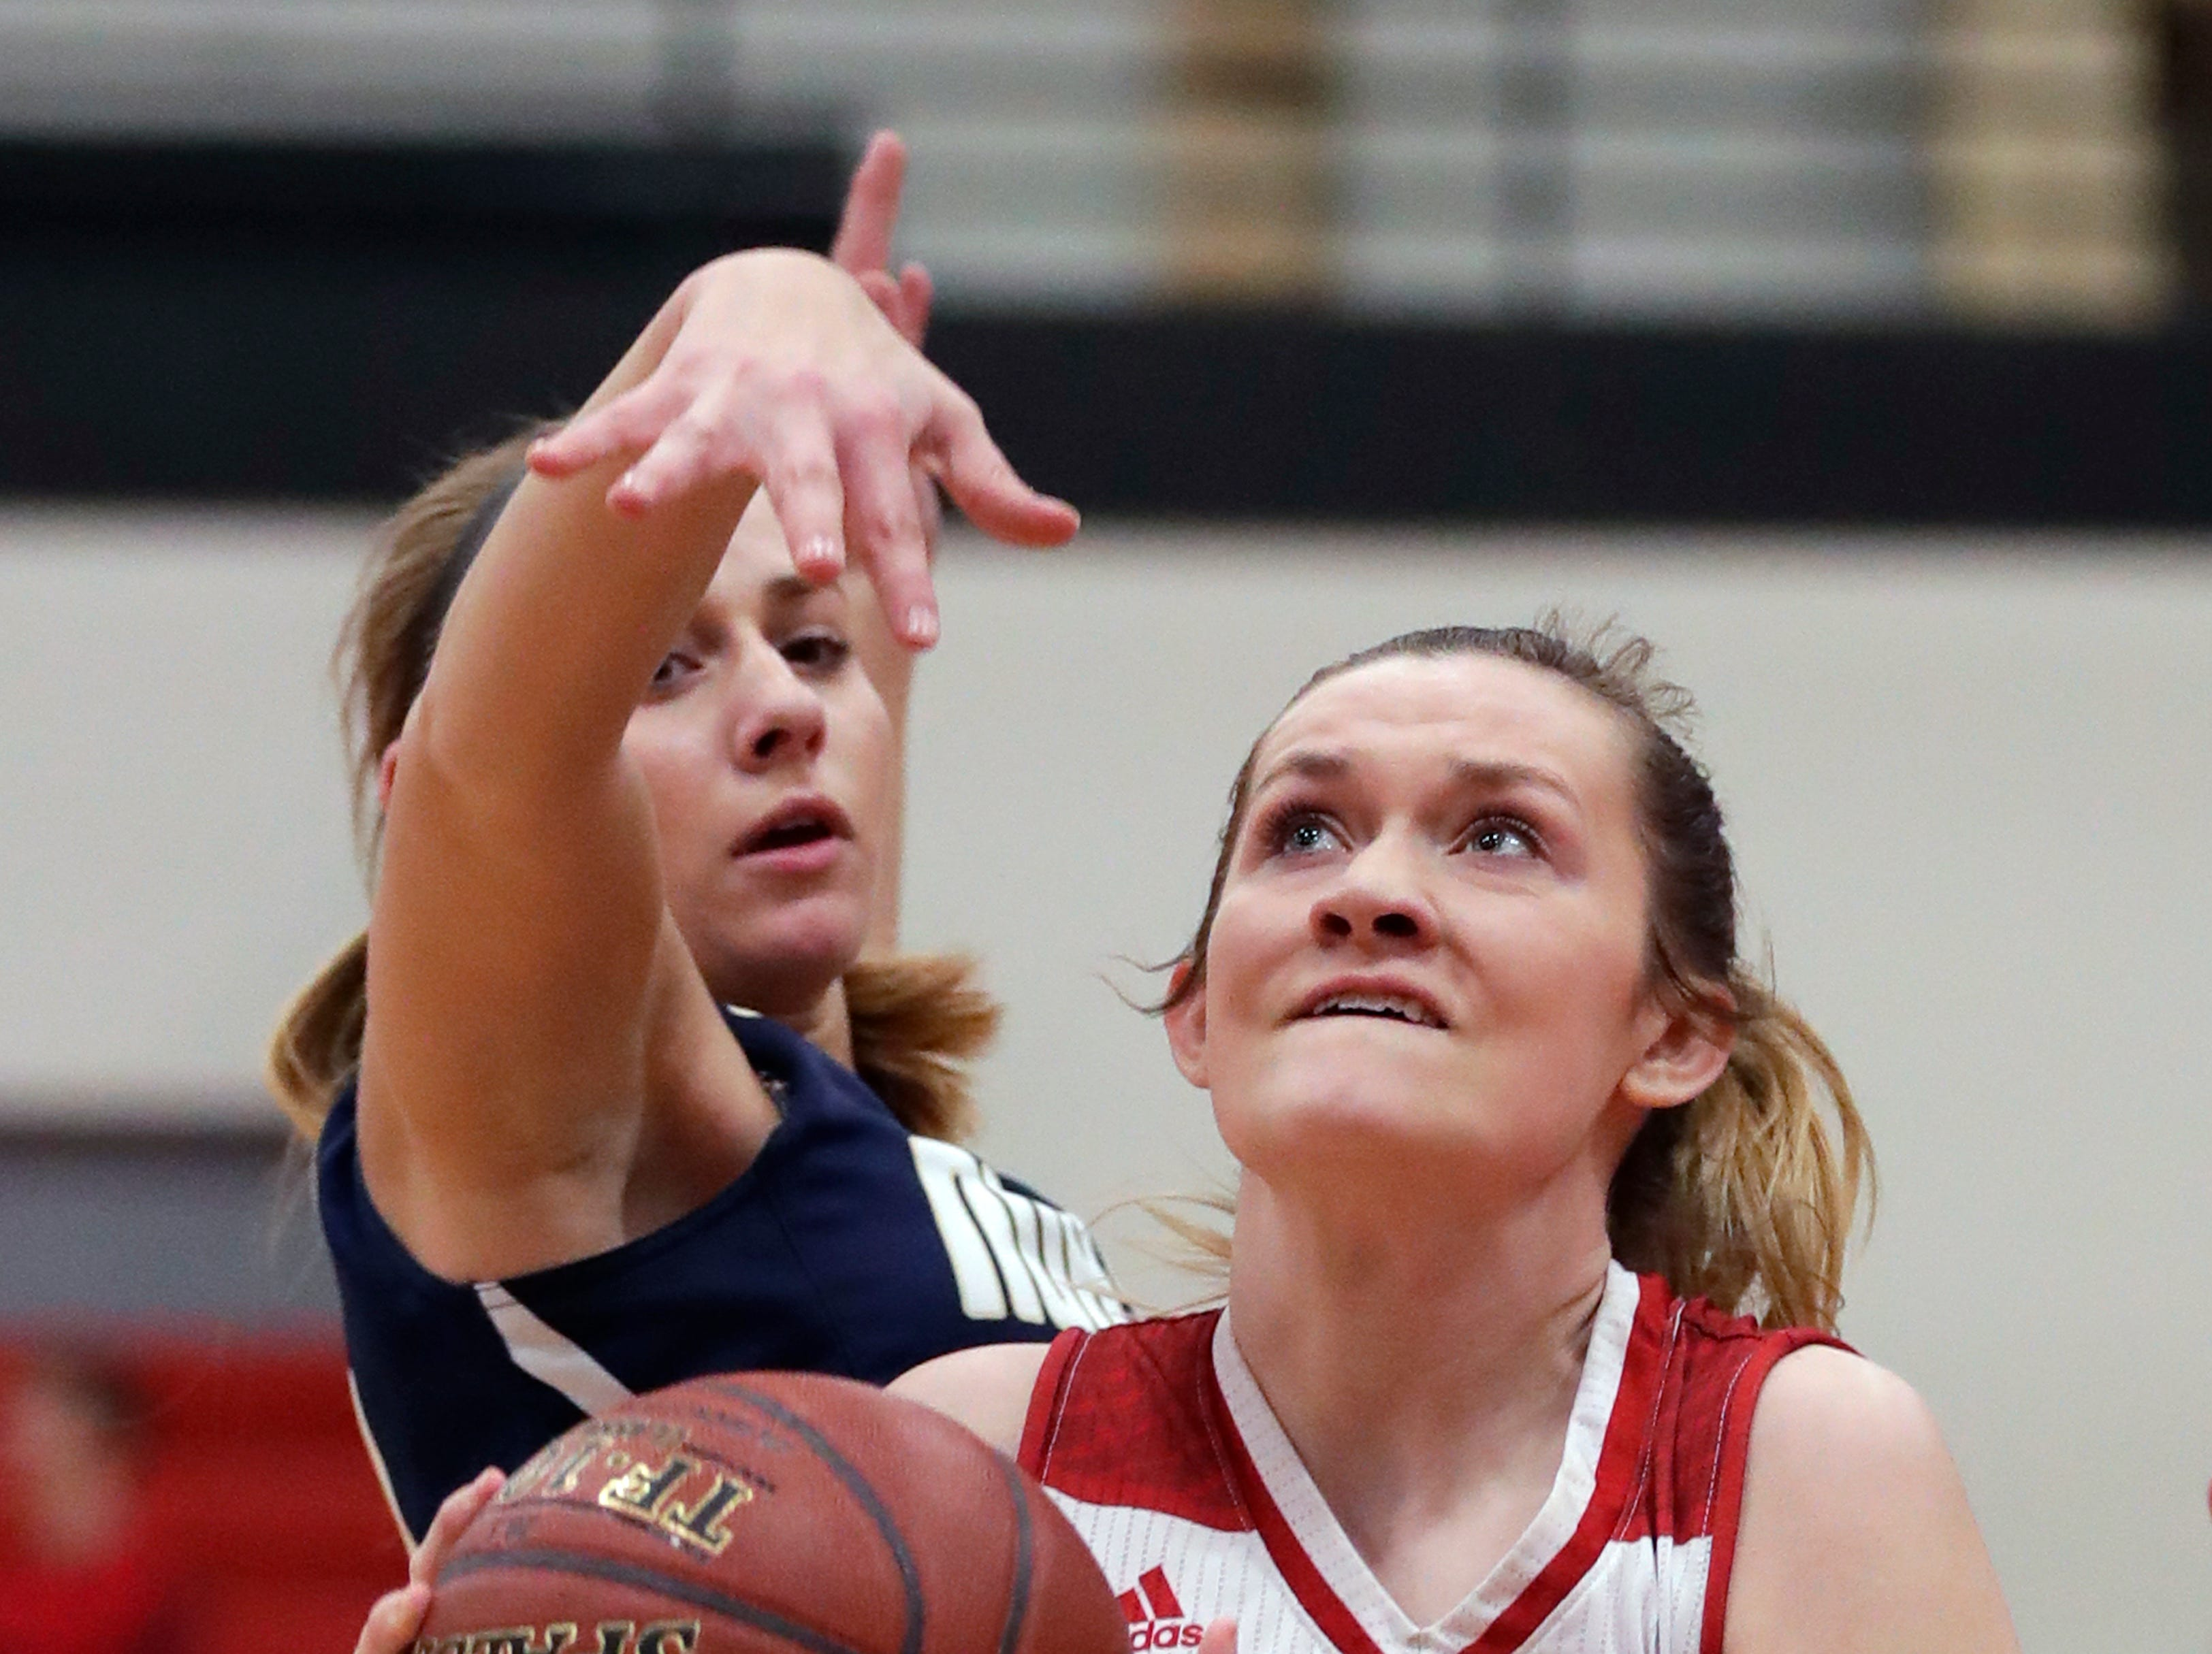 Kimberly High School's Kennedy Litvinoff (22) drives to the basket against Appleton North High School's Teagan Prusinski (12) during their girls basketball game Monday, February 11, 2019, in Kimberly, Wis. Dan Powers/USA TODAY NETWORK-Wisconsin